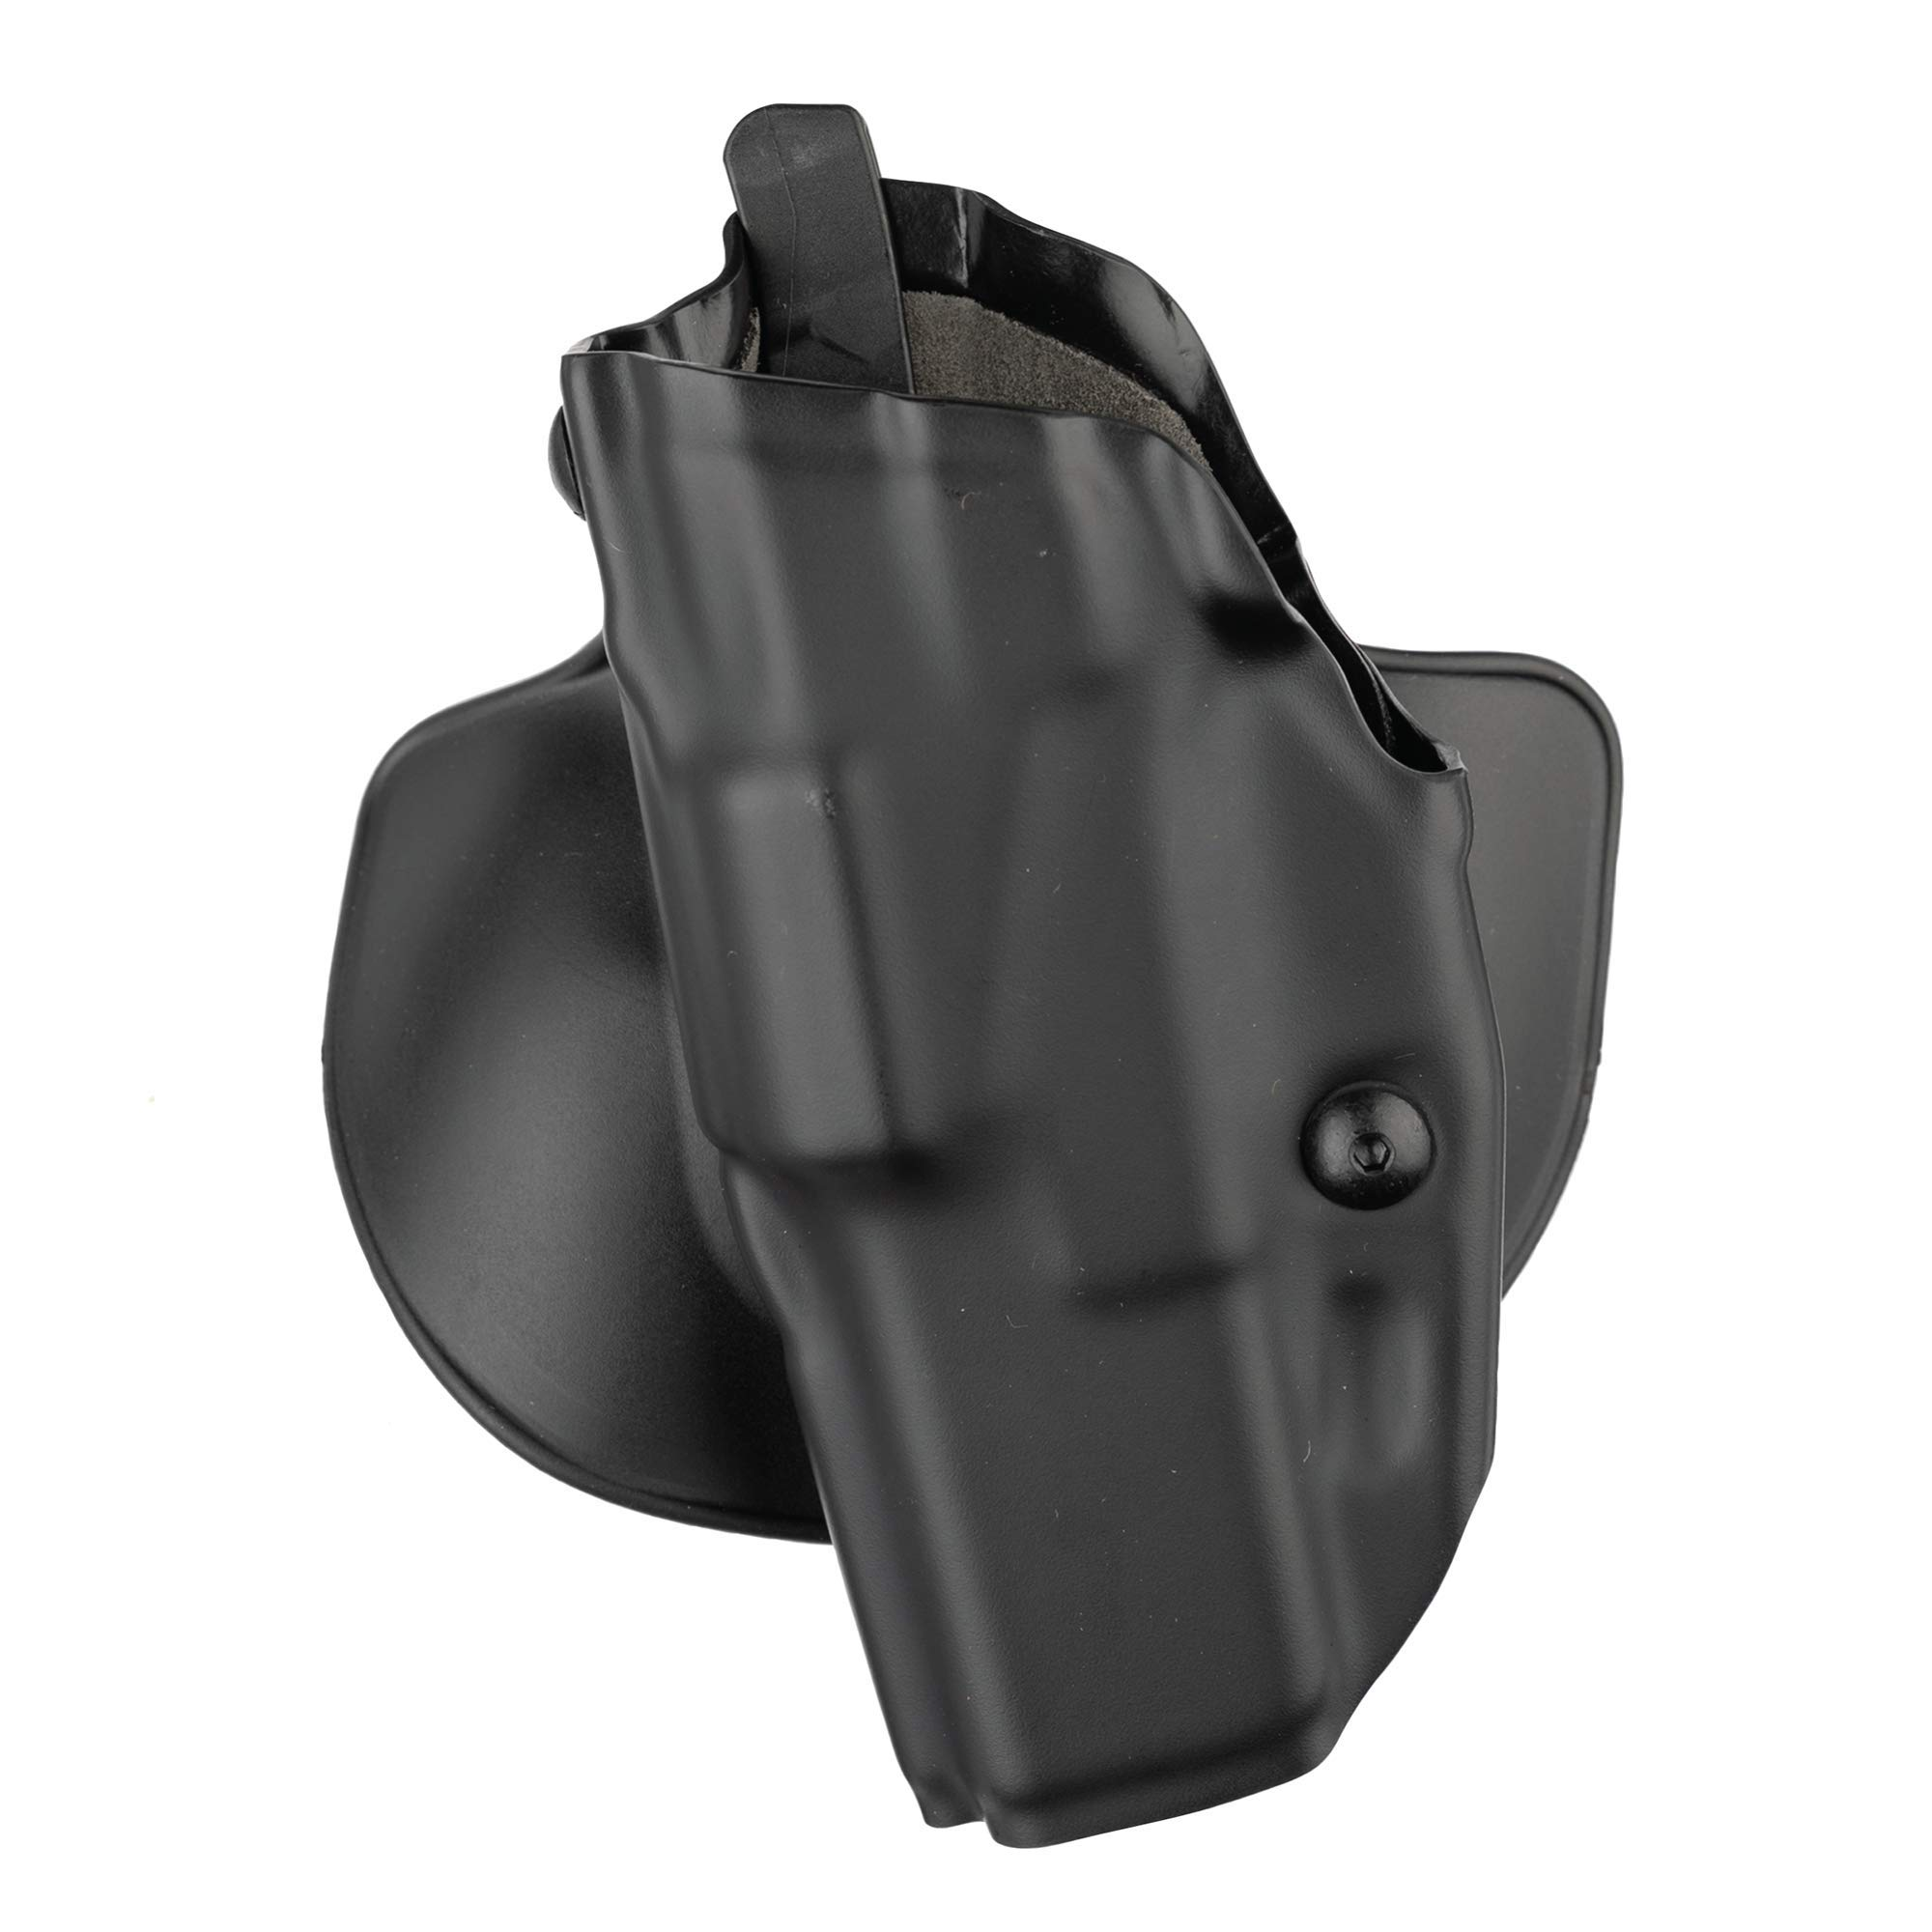 Safariland 6378, ALS Concealment Paddle and Belt Loop Combo Holster, Left Hand